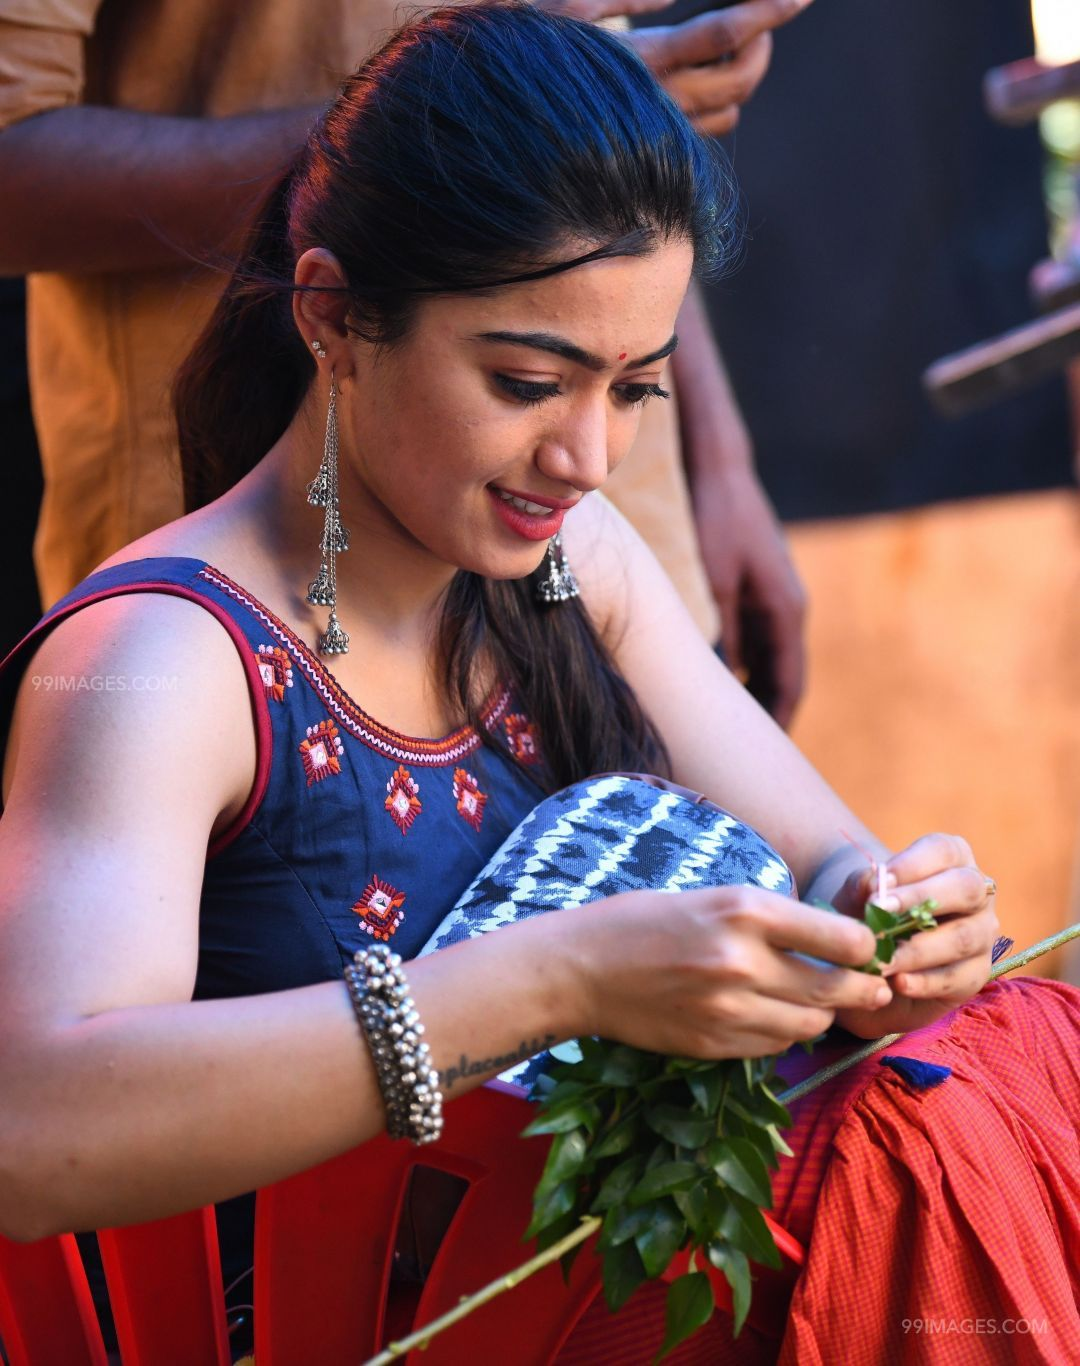 Rashmika Mandanna Beautiful HD Photos & Mobile Wallpapers HD (Android/iPhone) (1080p) (44293) - Rashmika Mandanna